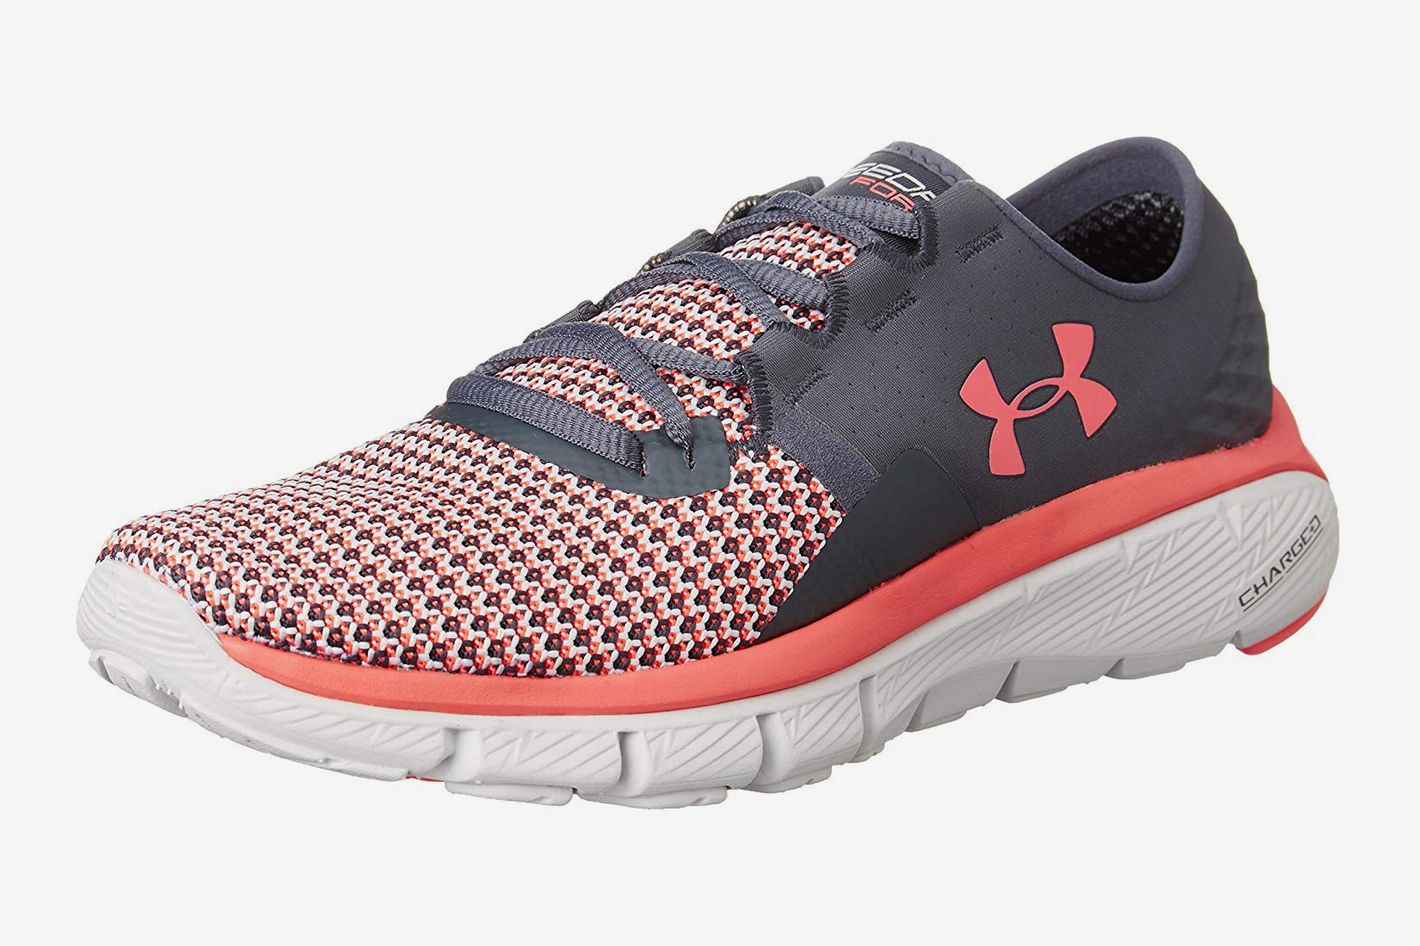 Under Armour Women s UA SpeedForm Fortis 2 Running Shoes 5770a0bd8